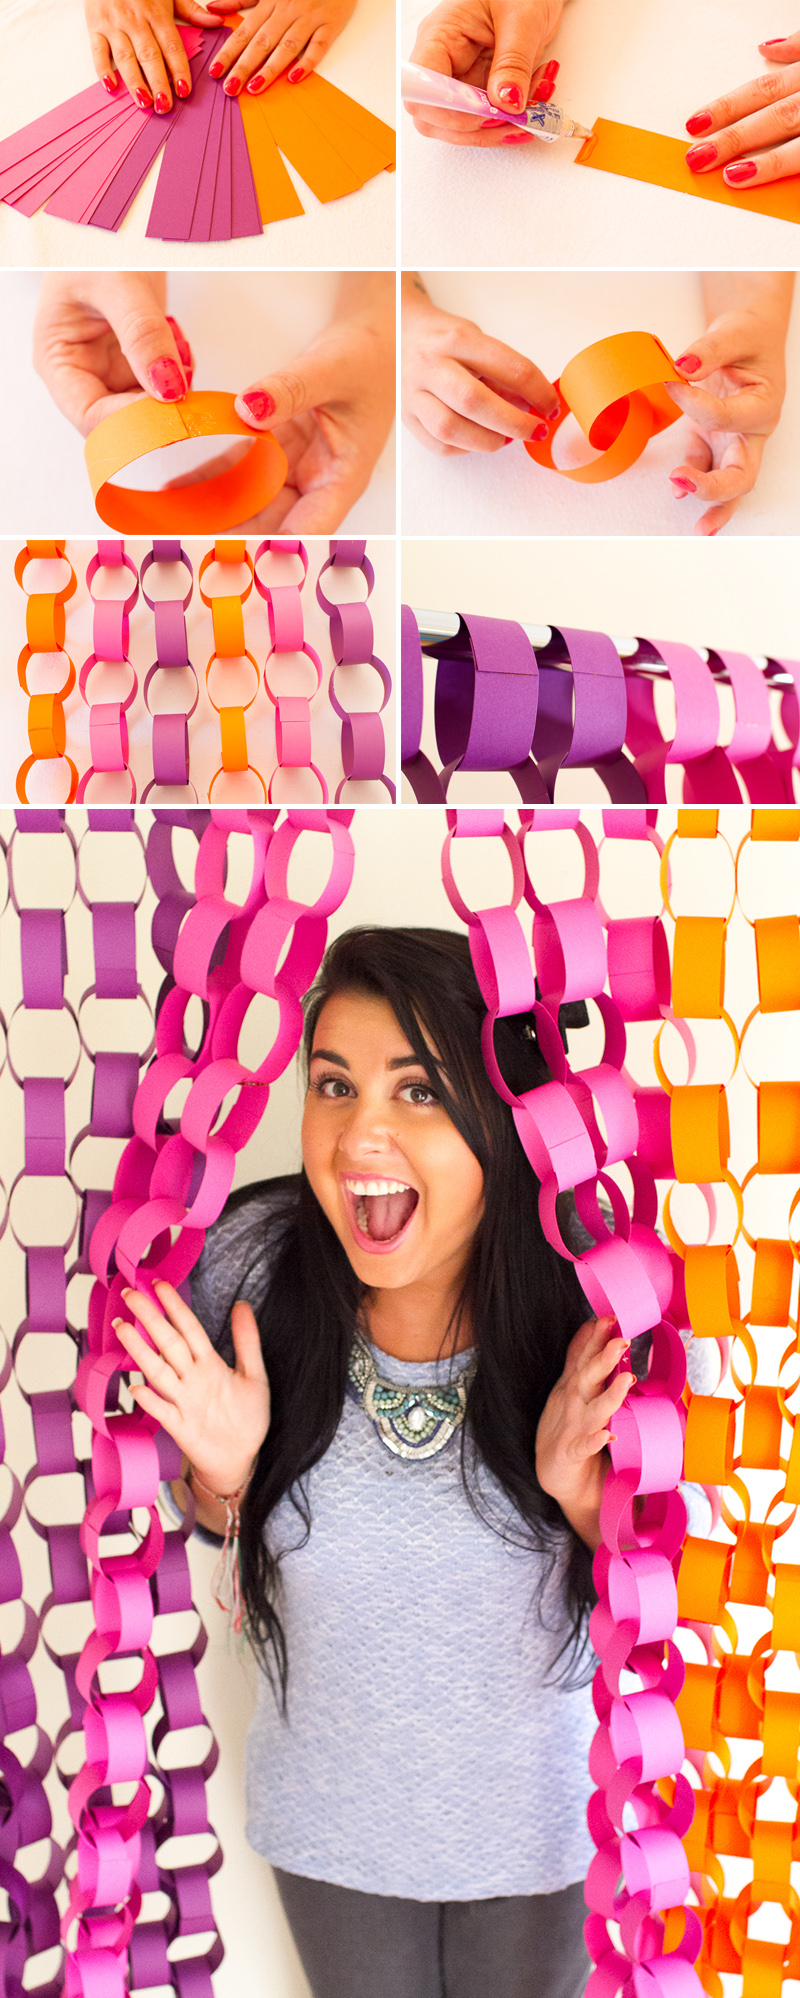 DIY-Paper-chain-photo backdrop idea tutorial